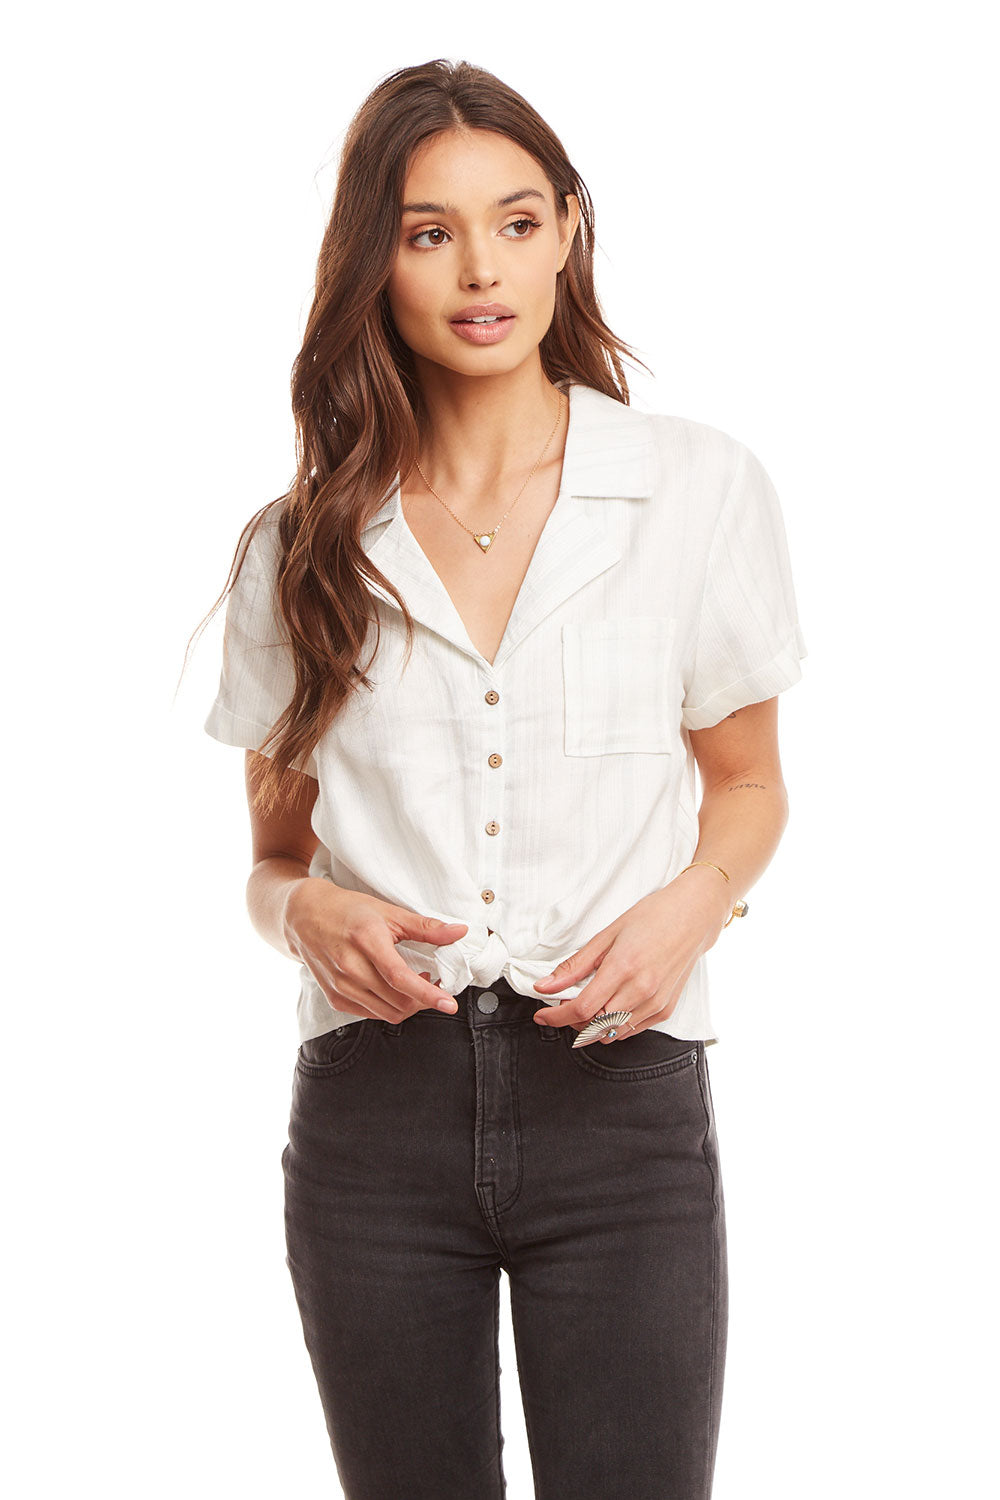 Beachy Linen Rolled S/S Tie Front Button Down Shirt WOMENS chaserbrand4.myshopify.com